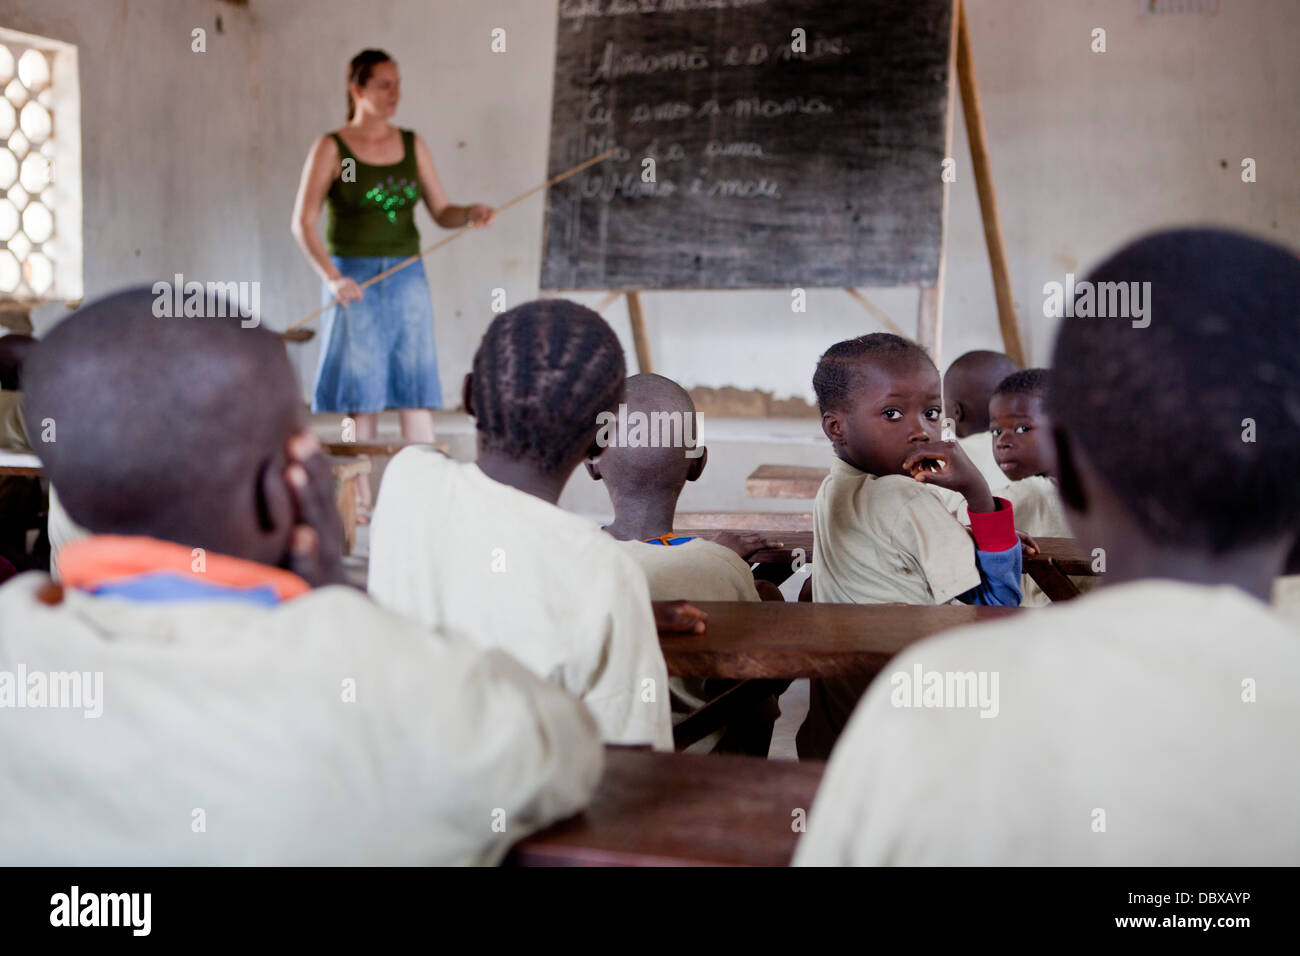 Missionary school in Guinea-Bissau, West Africa. - Stock Image